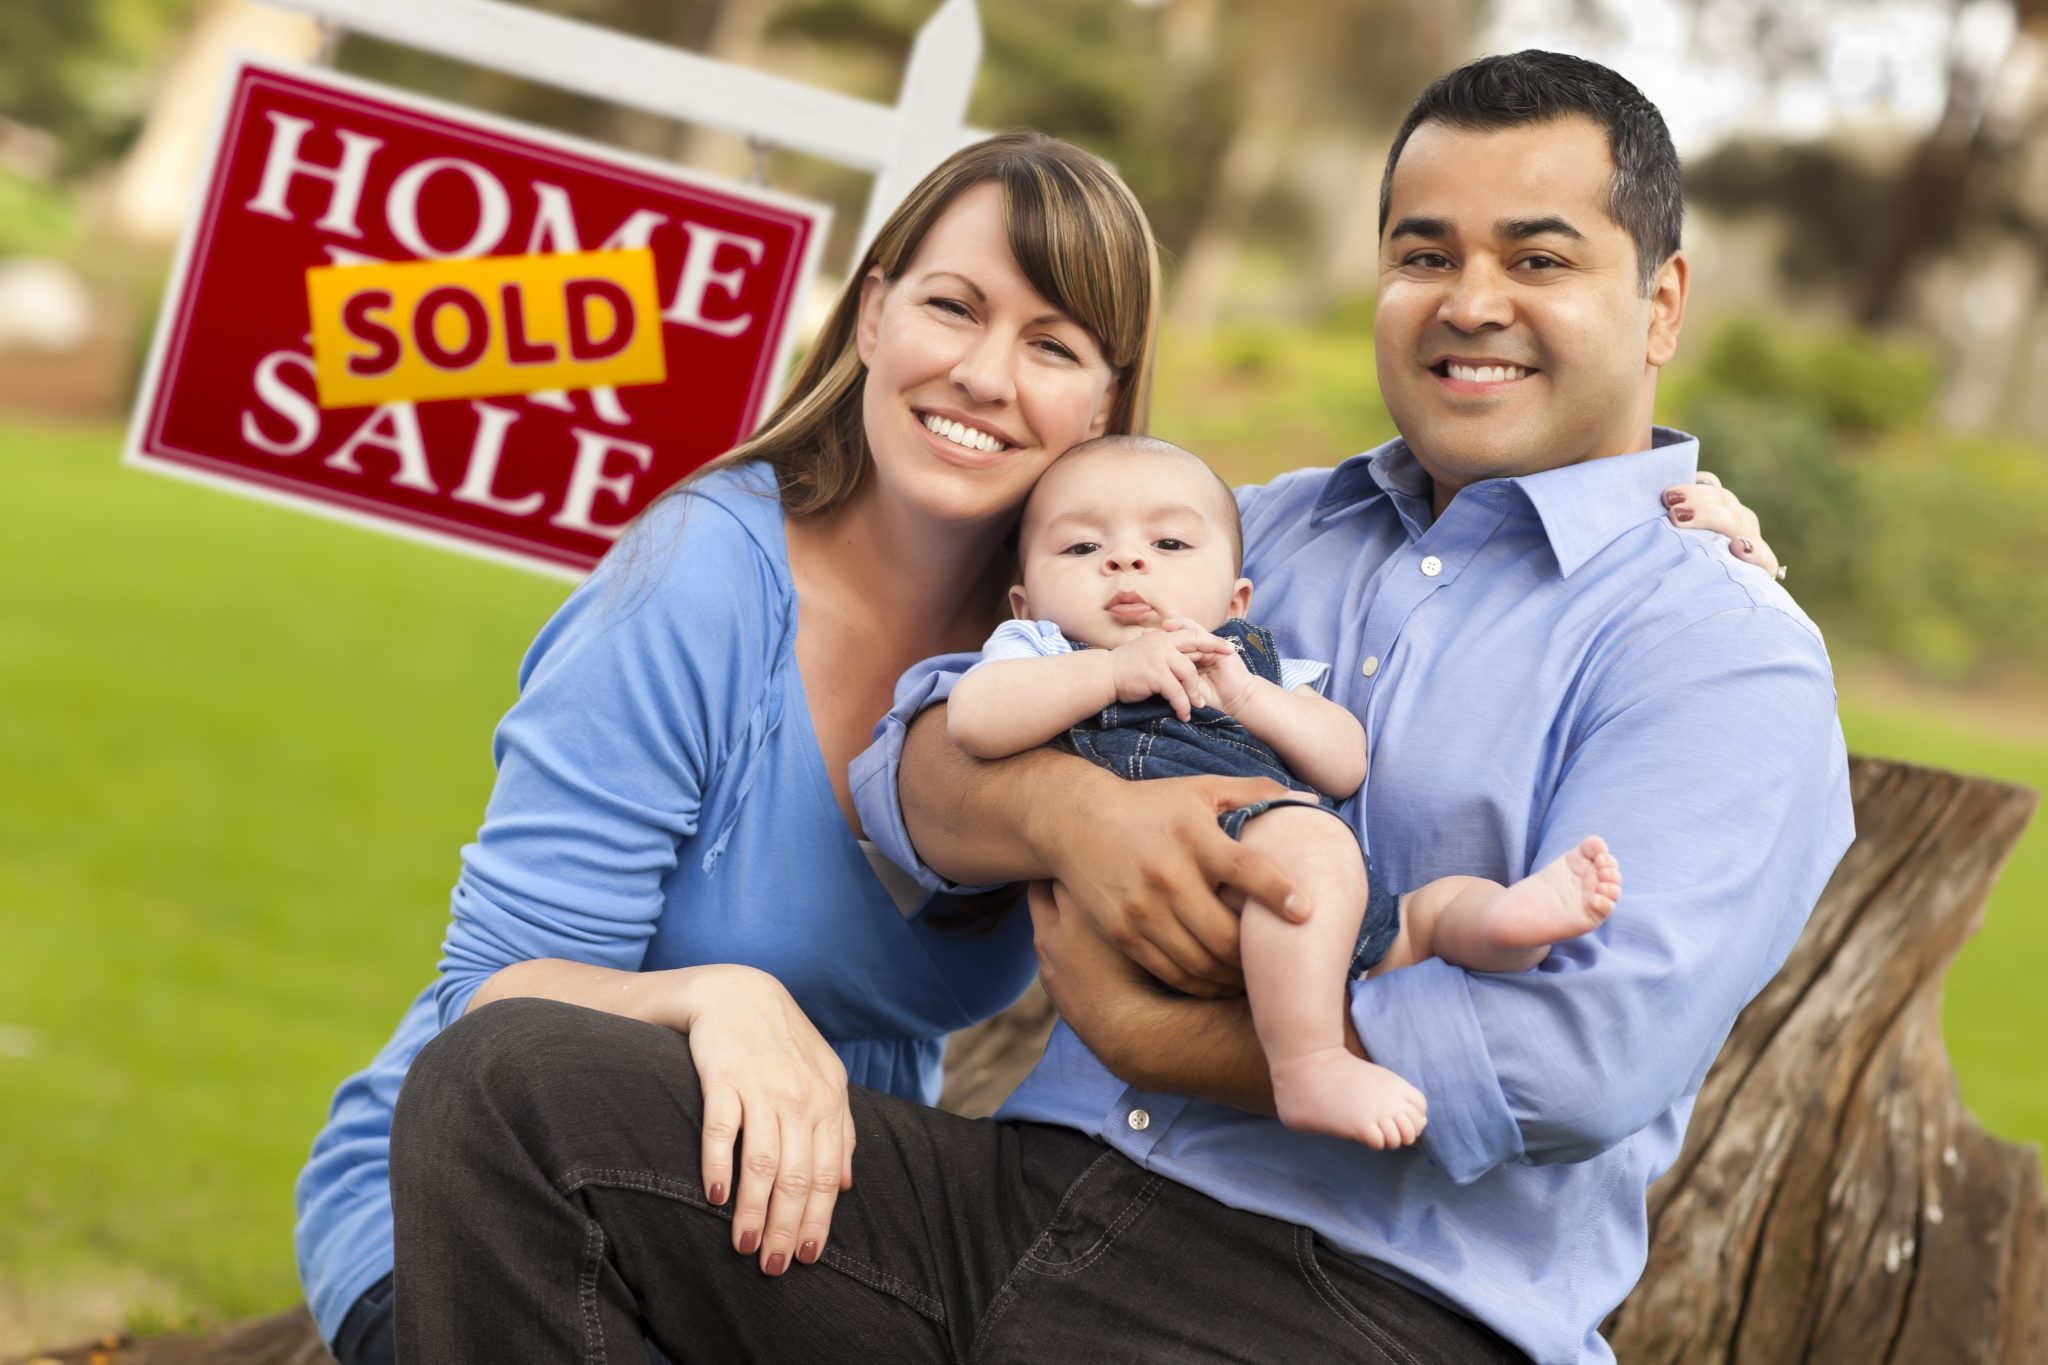 Join us for our free homebuying learning session!